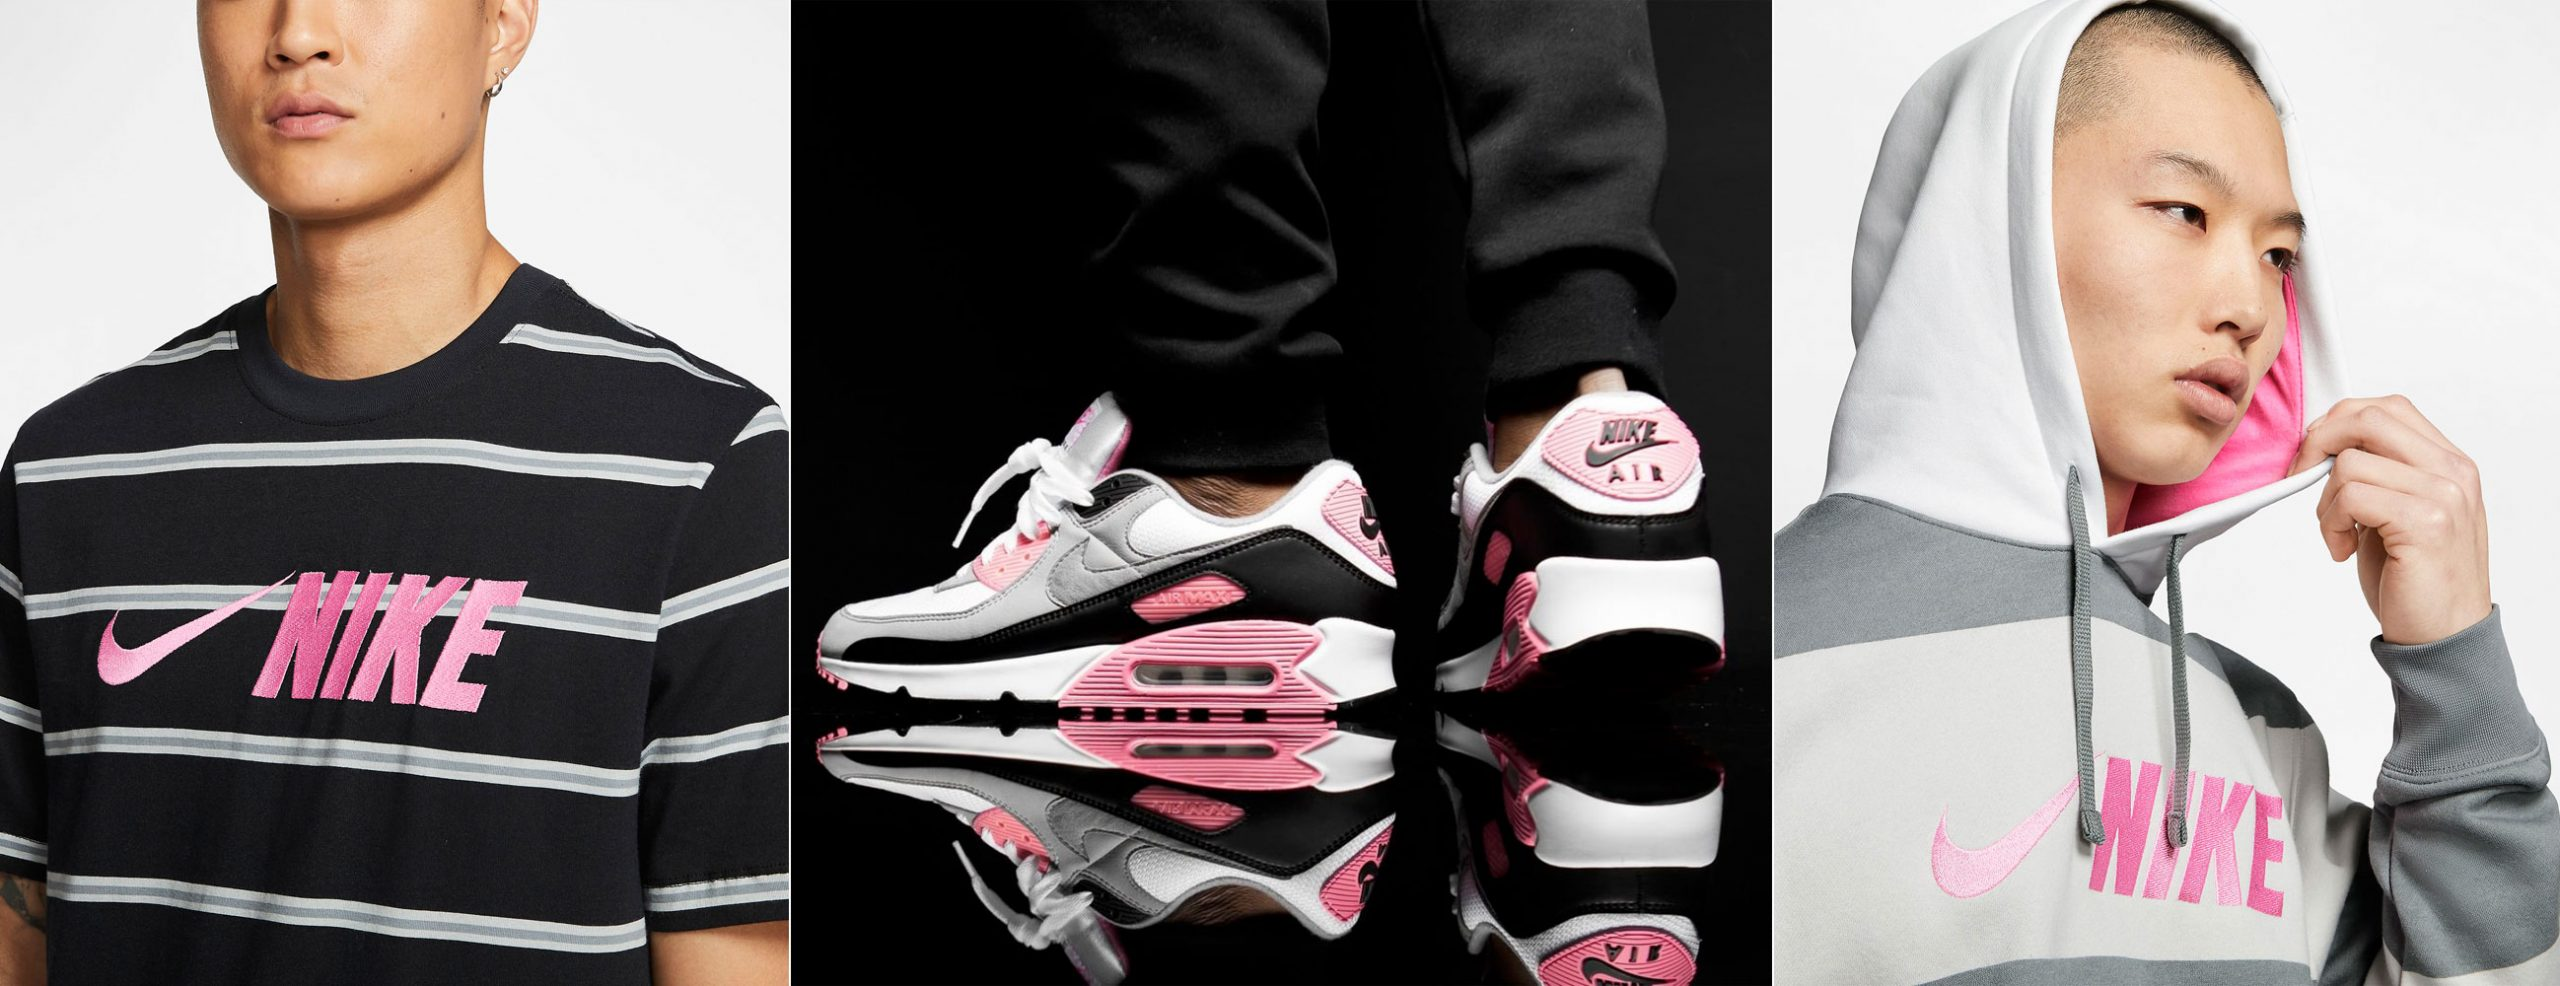 nike-air-max-90-rose-pink-clothing-match